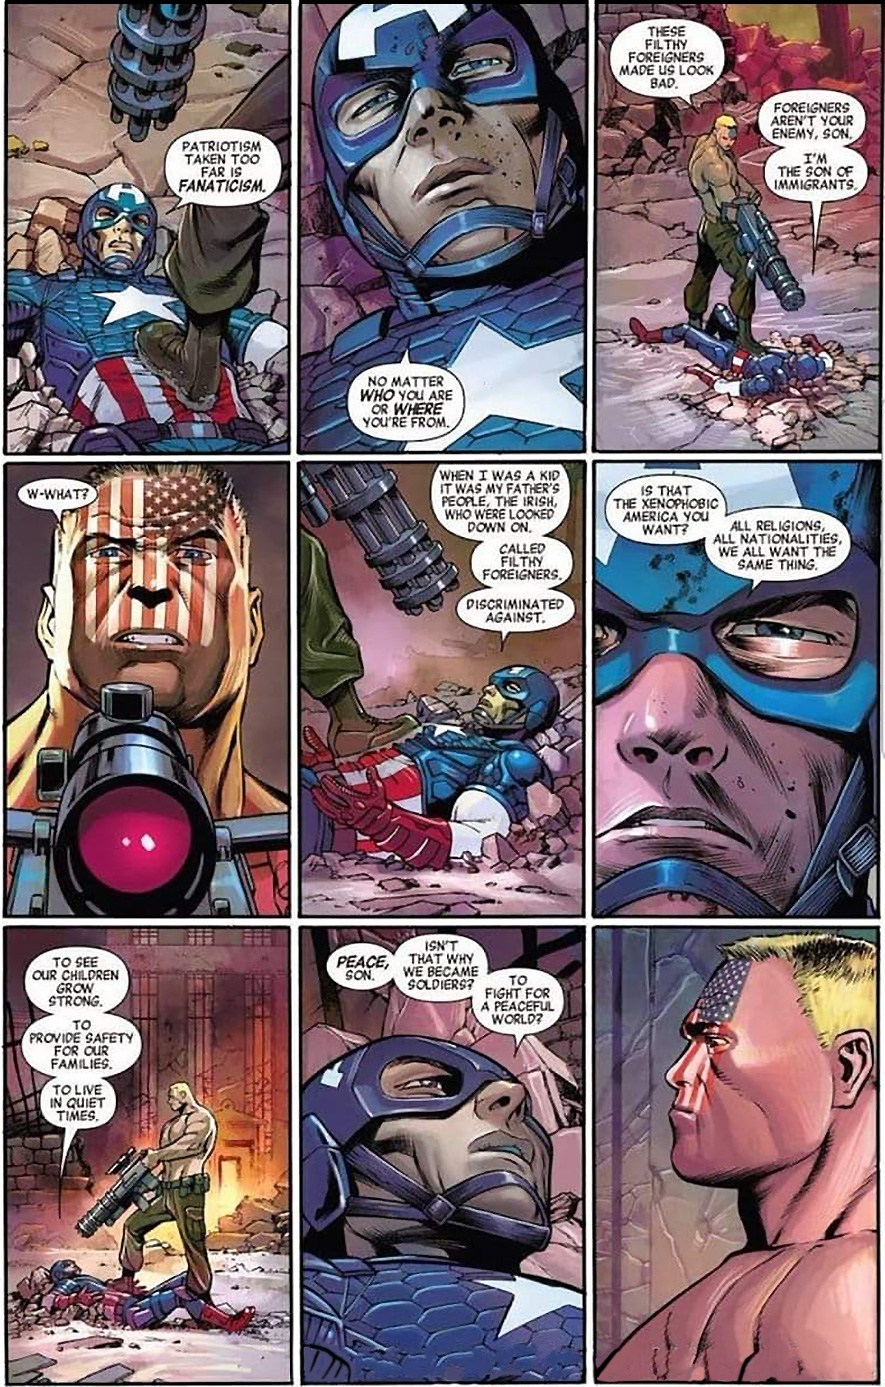 Cap speaking about a better USA